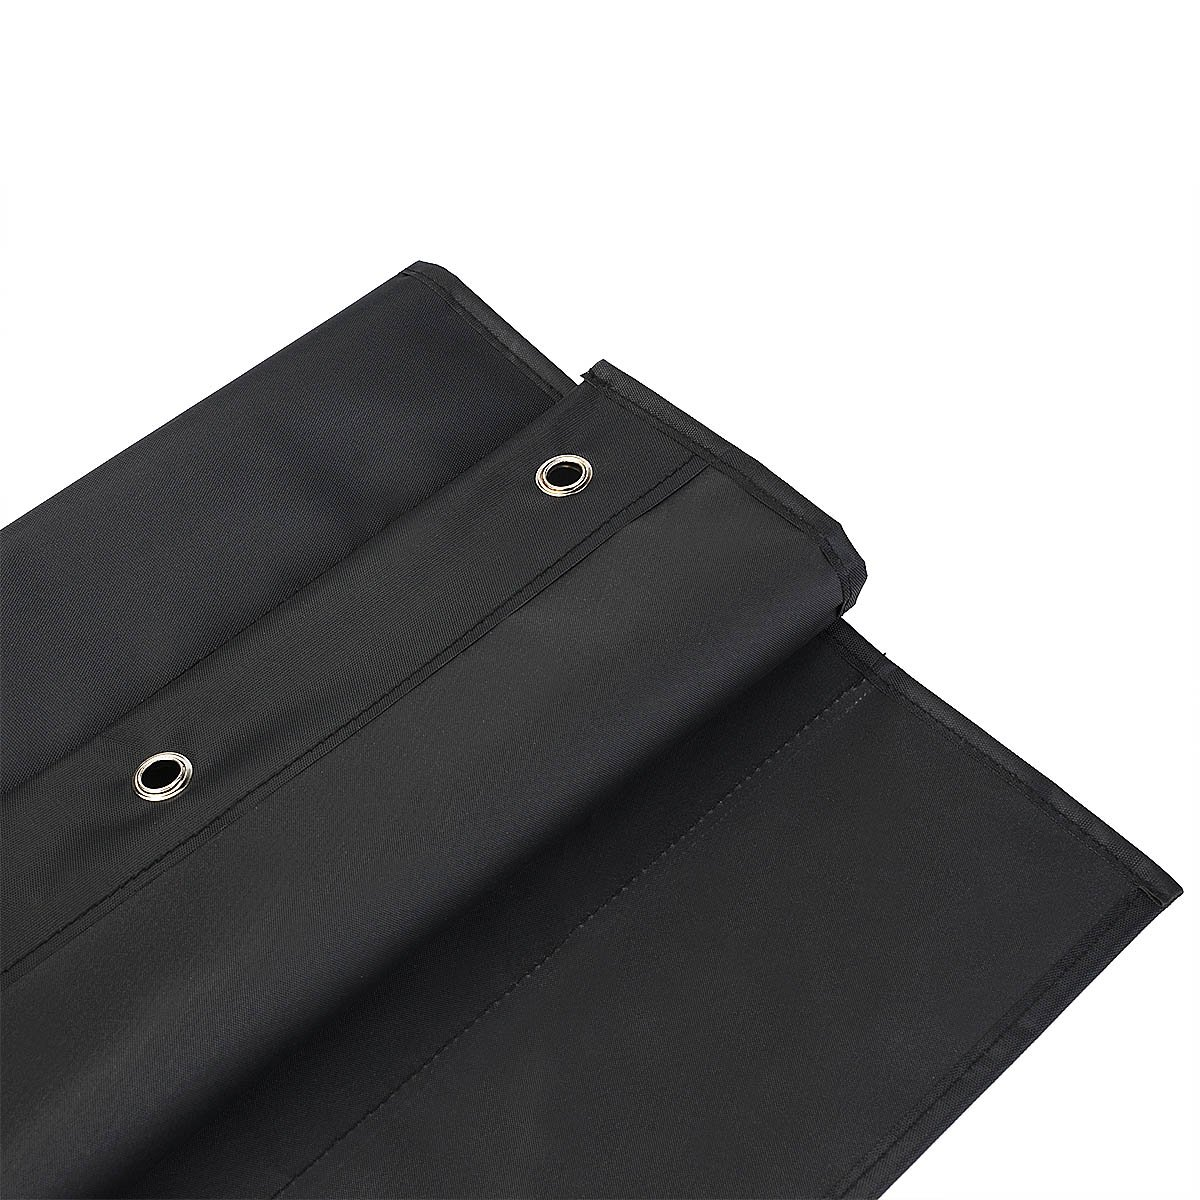 2 Pack Storage Pocket Chart, Wall hanging File Organizer Folder with 10 large Pockets for Office, Home, School, Studio, etc. 14 X 47 inch, BLACK, Mountings included. by Vantasii (Image #4)